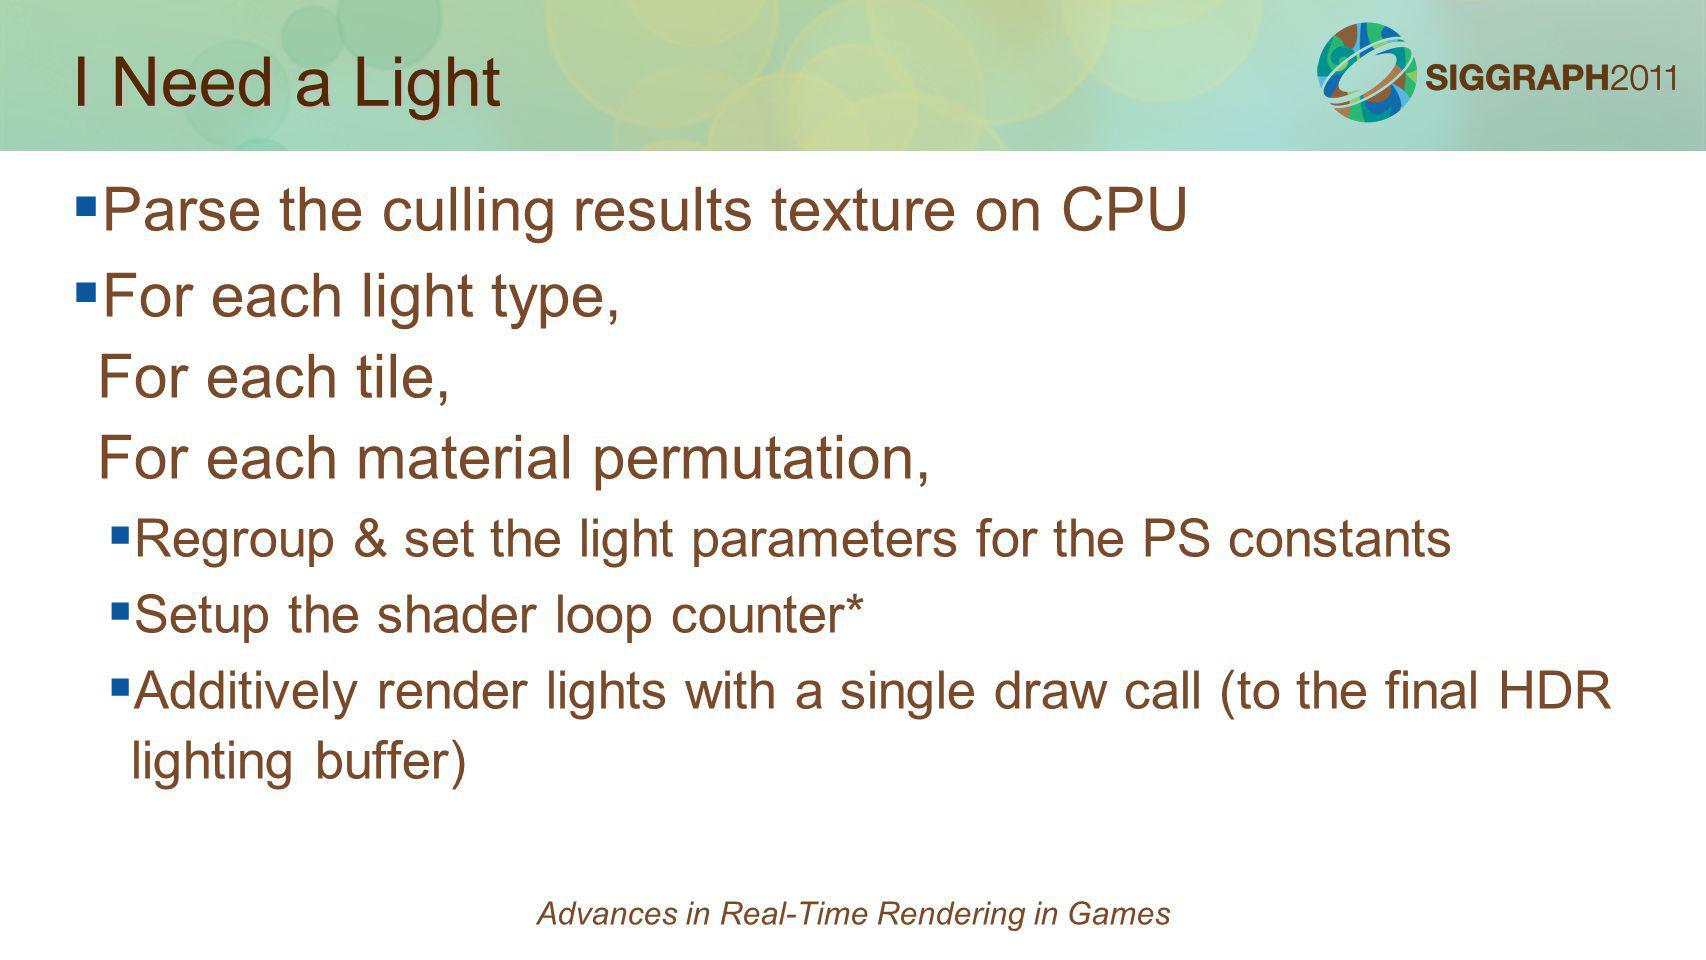 Advances in Real-Time Rendering in Games - ppt download